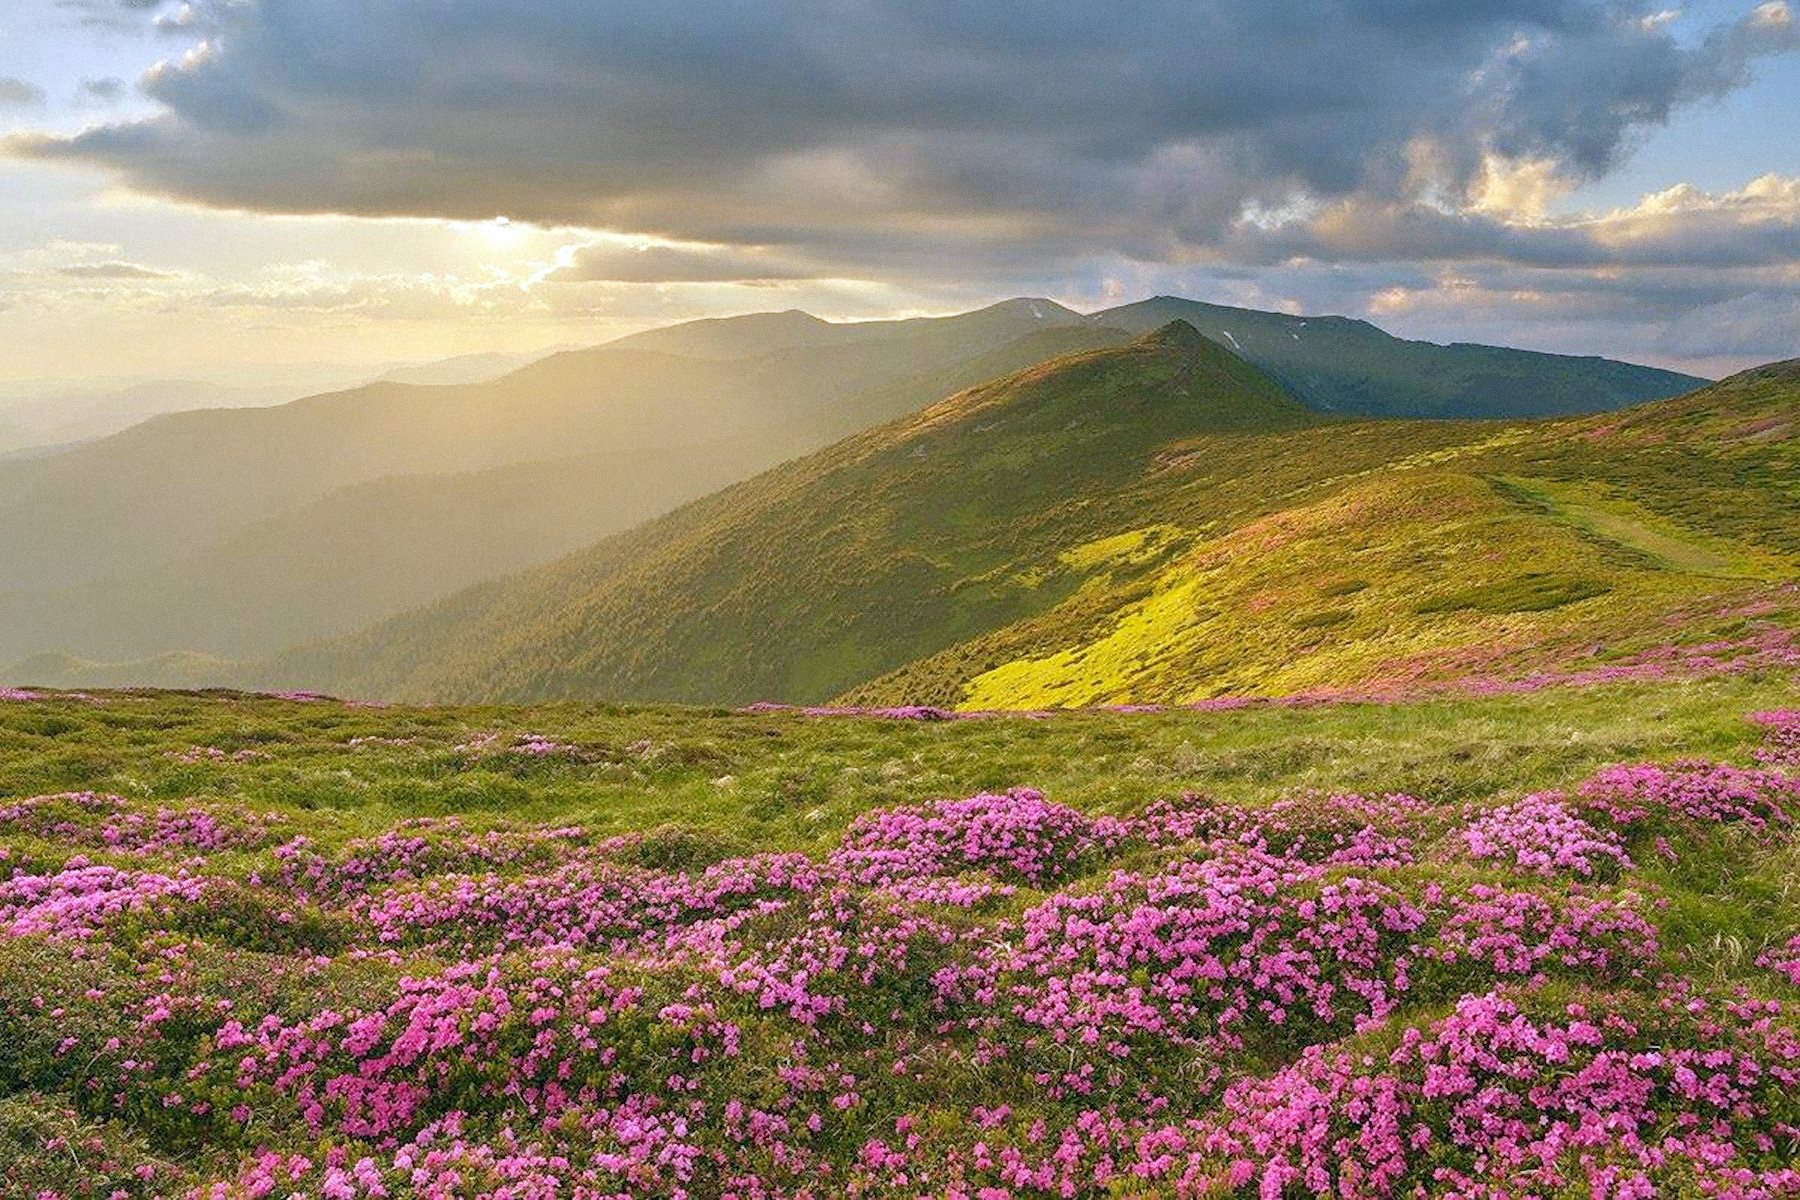 00 Aleksandr Kotenko. Flowering Rhododendron on the Slopes of Chernogorsky Ridge in the Carpathians. 2015